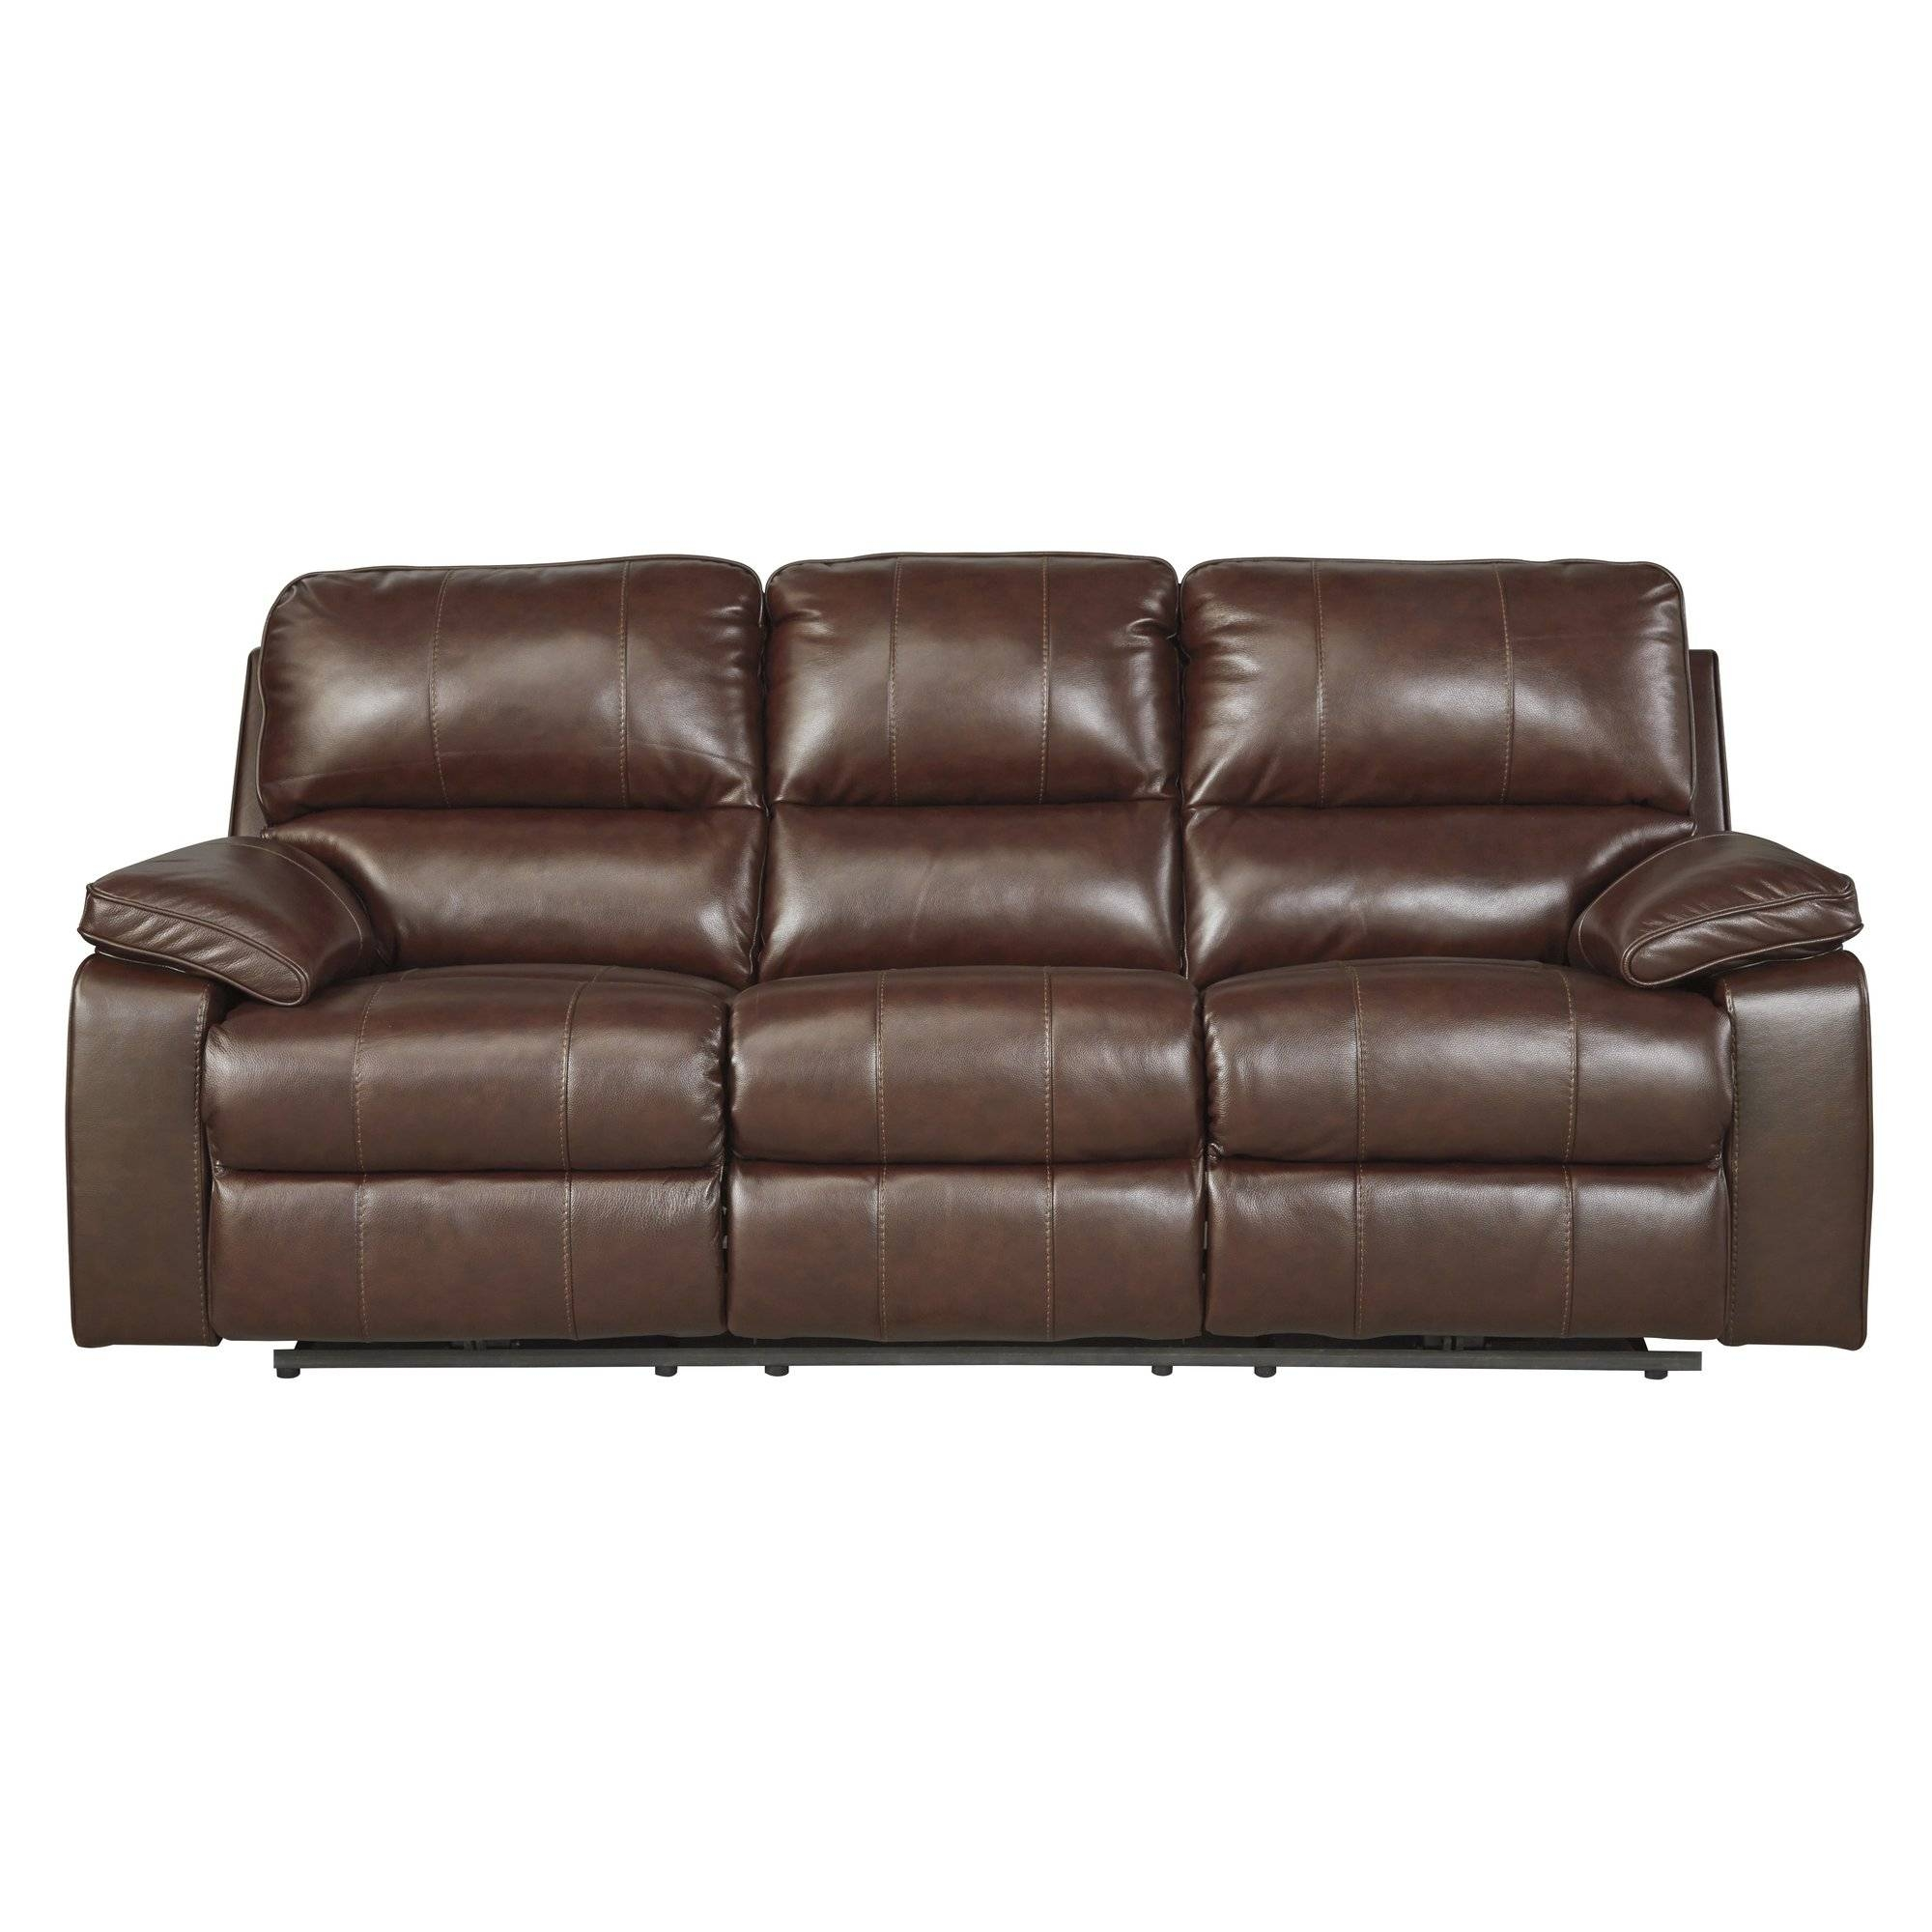 Red Barrel Studio Stratford Reclining Sofa | Wayfair Inside Stratford Sofas (View 4 of 30)